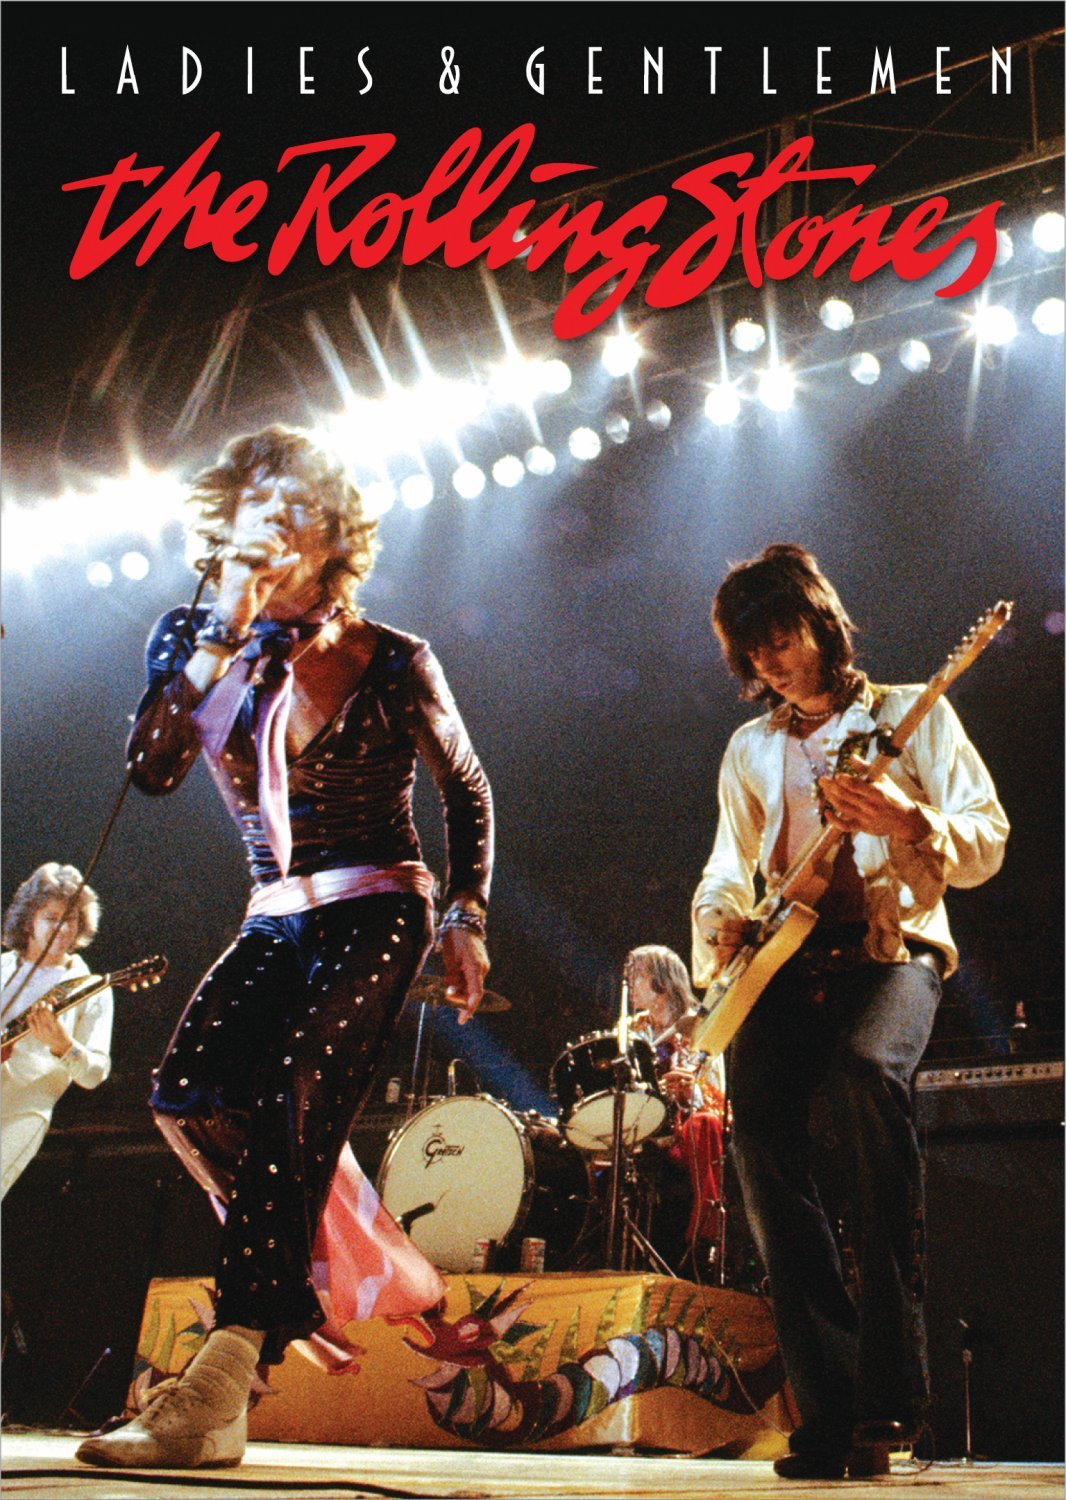 The Rolling Stones: Ladies and Gentlemen on  image